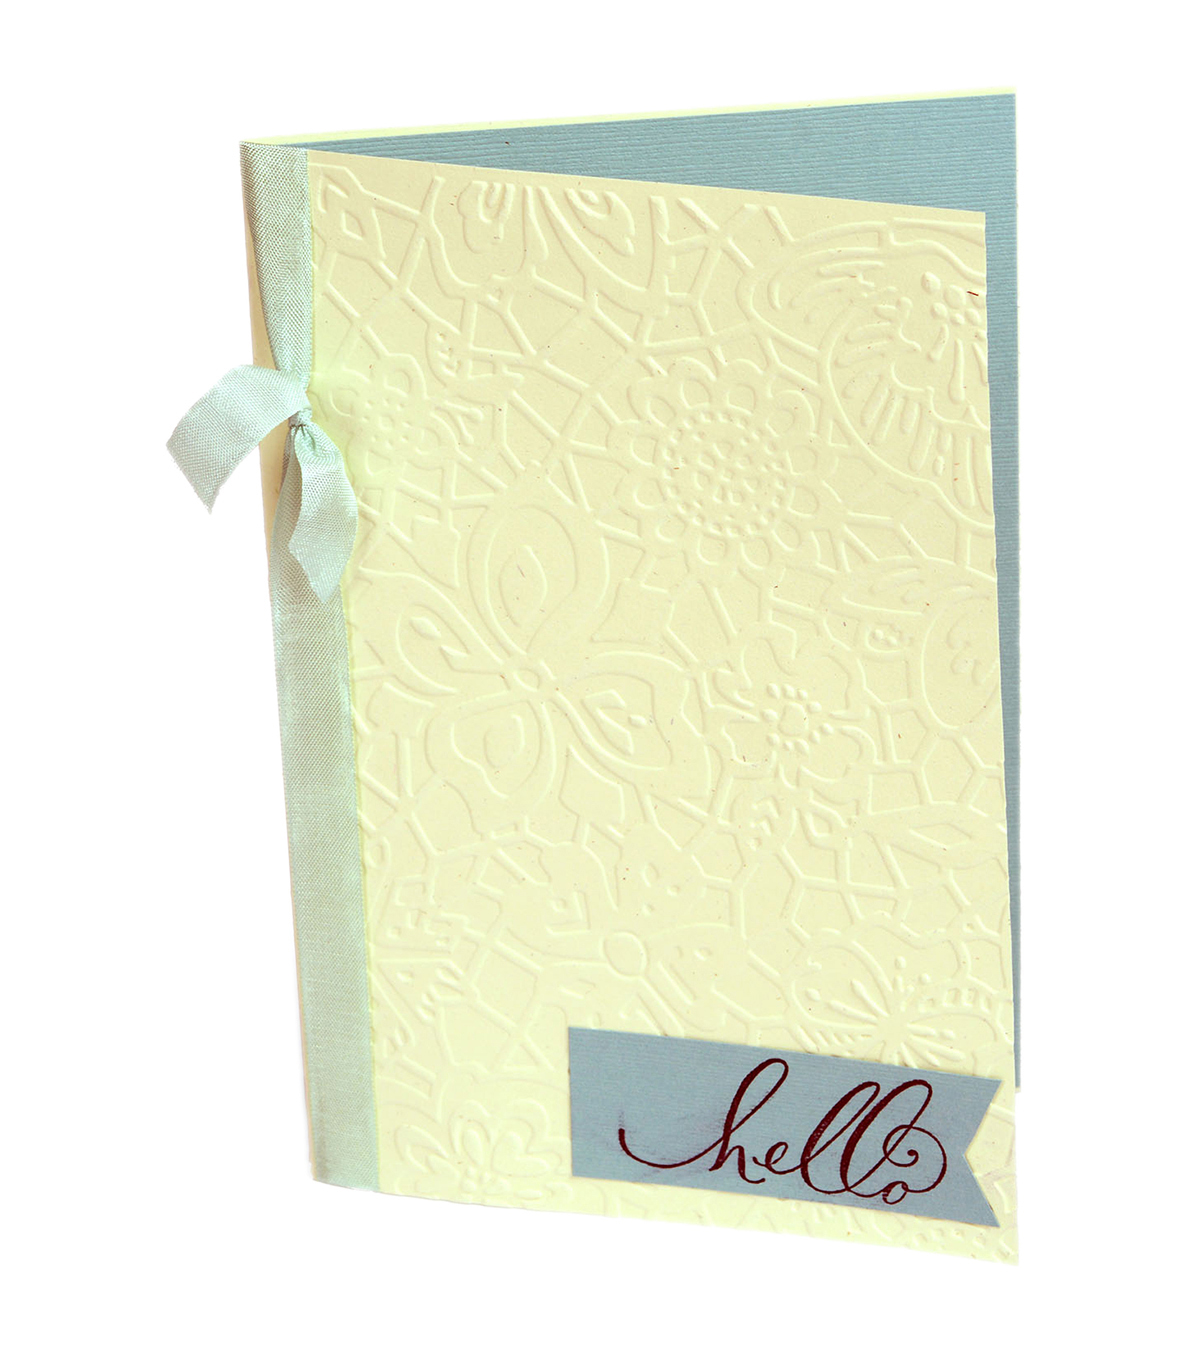 Sizzix Textured Impressions Plus Embossing Folder-Botanical Lace